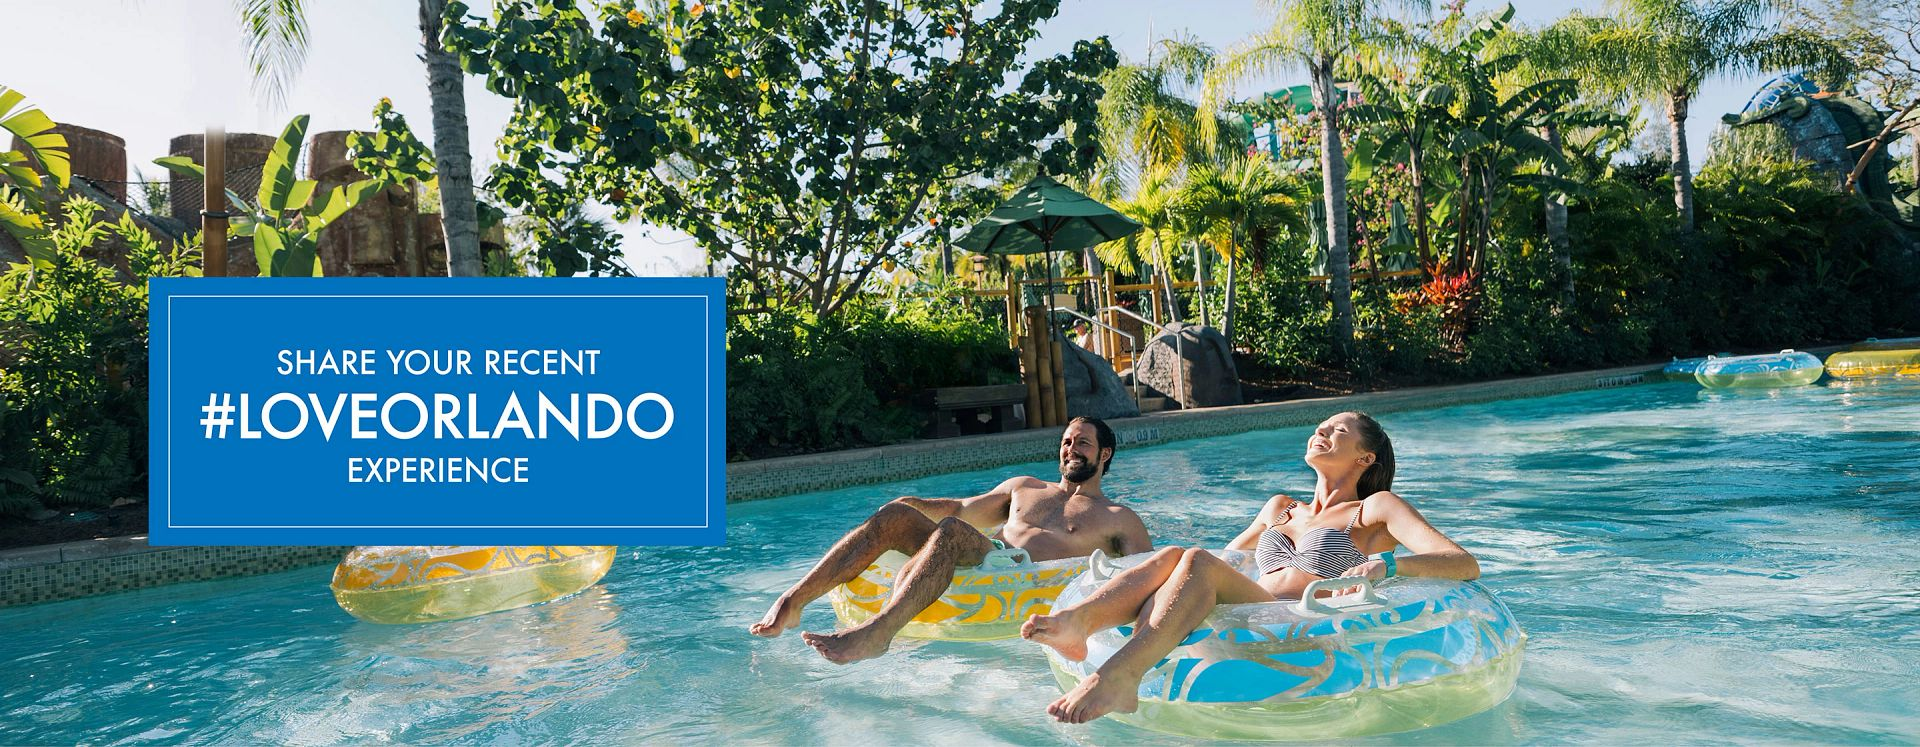 A couple relaxing in a lazy river in Orlando with text Share Your Recent #LoveOrlando Experience